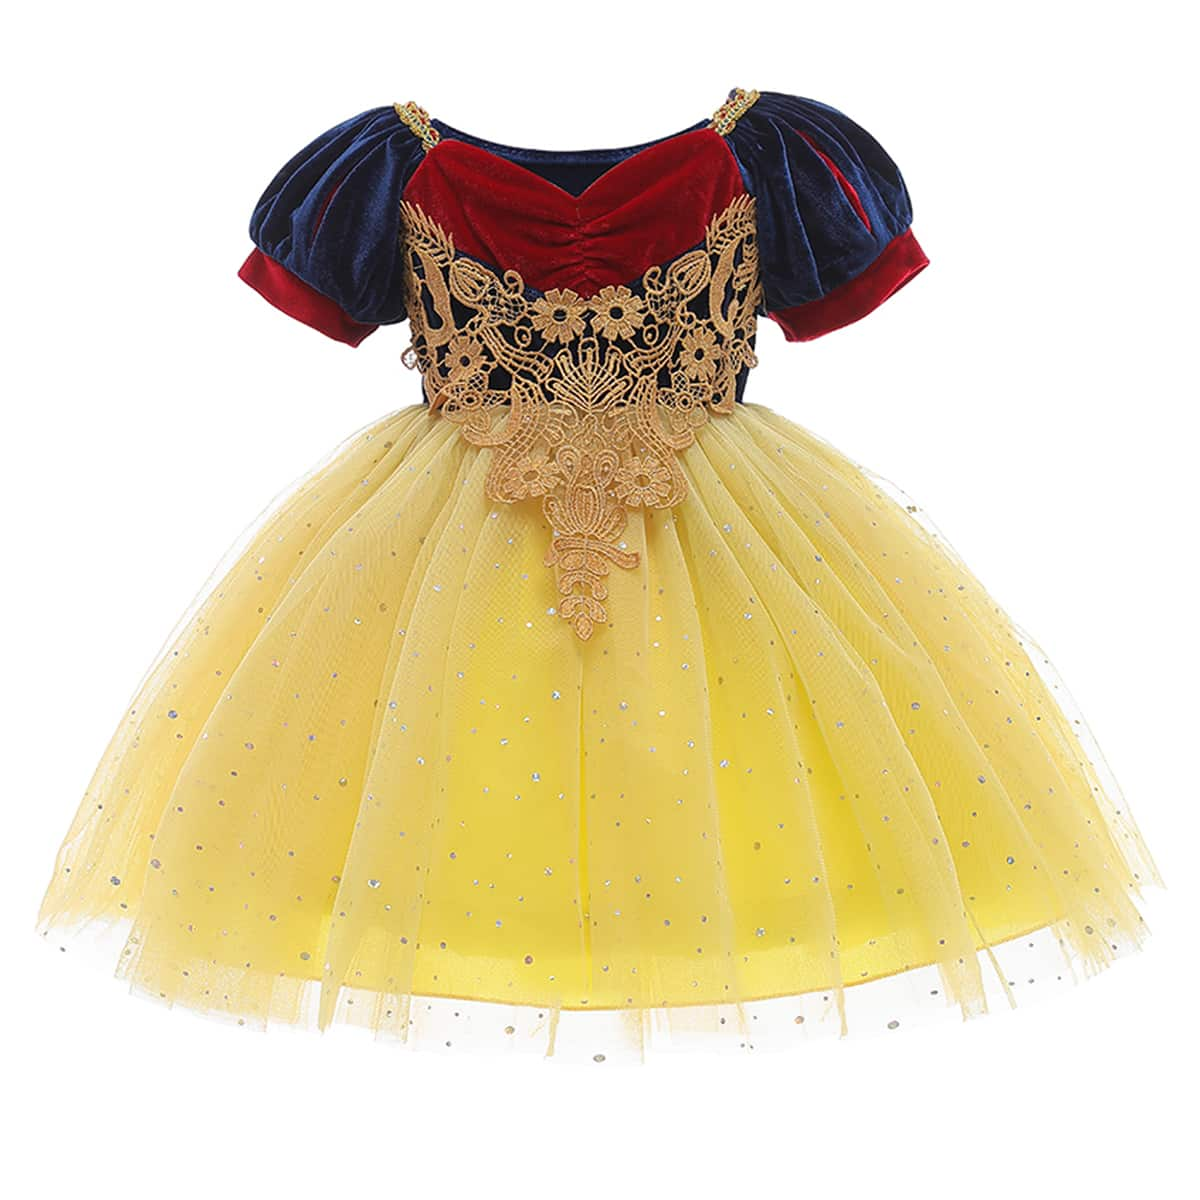 Toddler Girls Guipure Lace Appliques Puff Sleeve Mesh Overlay Gown Dress